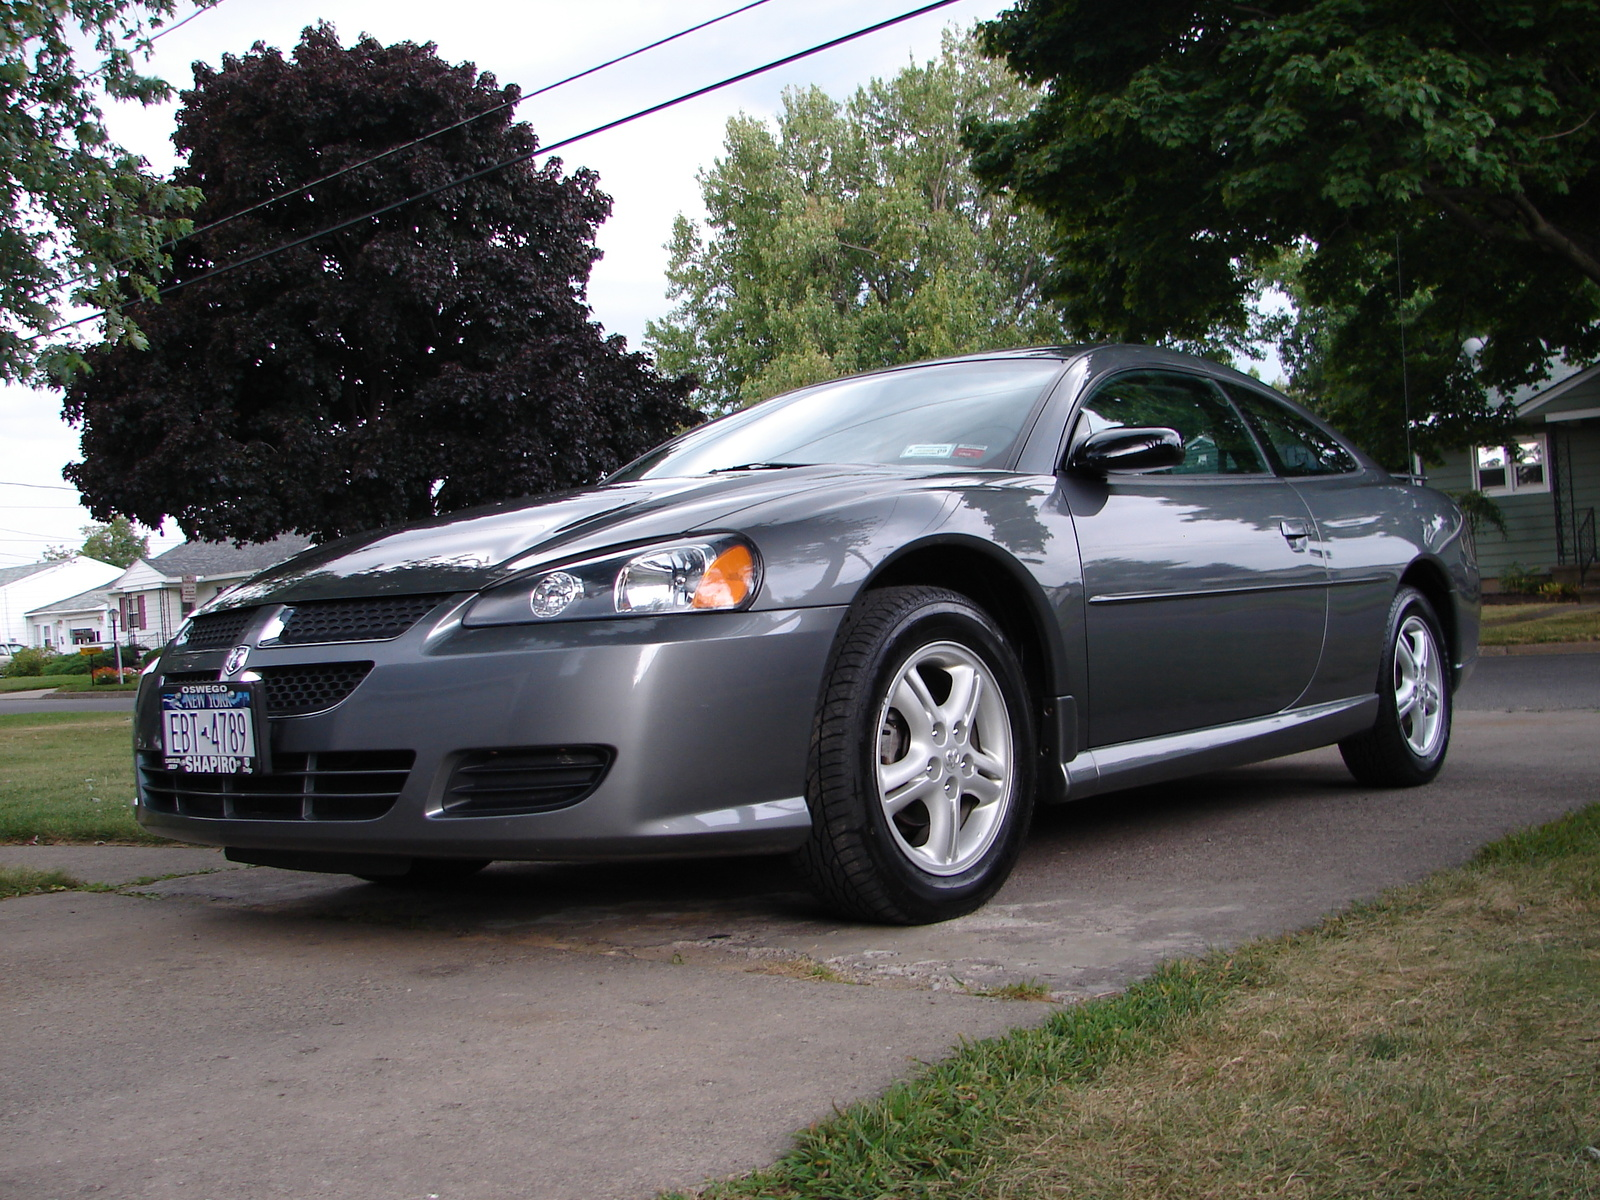 2004 dodge stratus coupe mpg. Black Bedroom Furniture Sets. Home Design Ideas